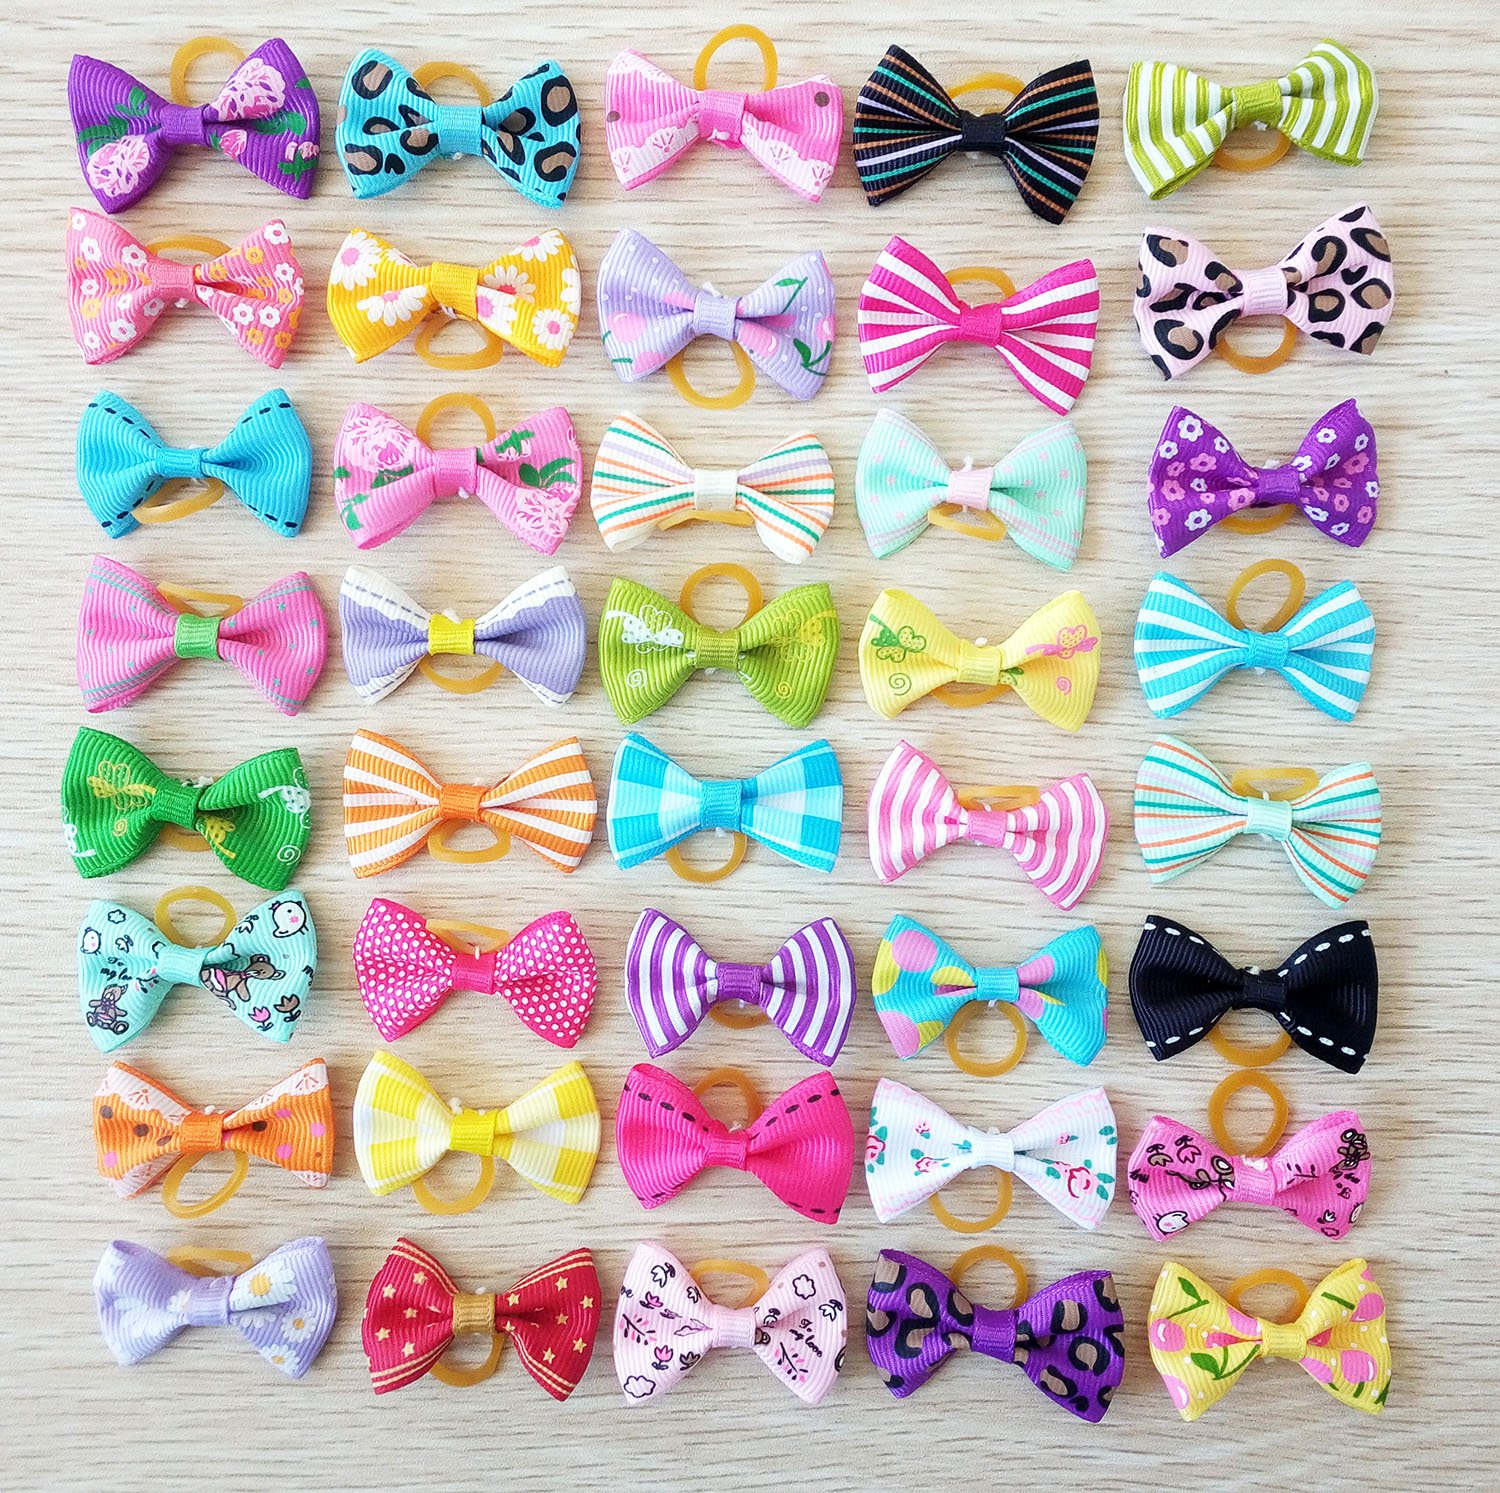 PET SHOW Small Dog Hair Bows Topknot With Rubber Bands Cat Puppy Pets Headdress Grooming Hair Accessories Color Assorted Randomly (100pcs) by PET SHOW (Image #2)